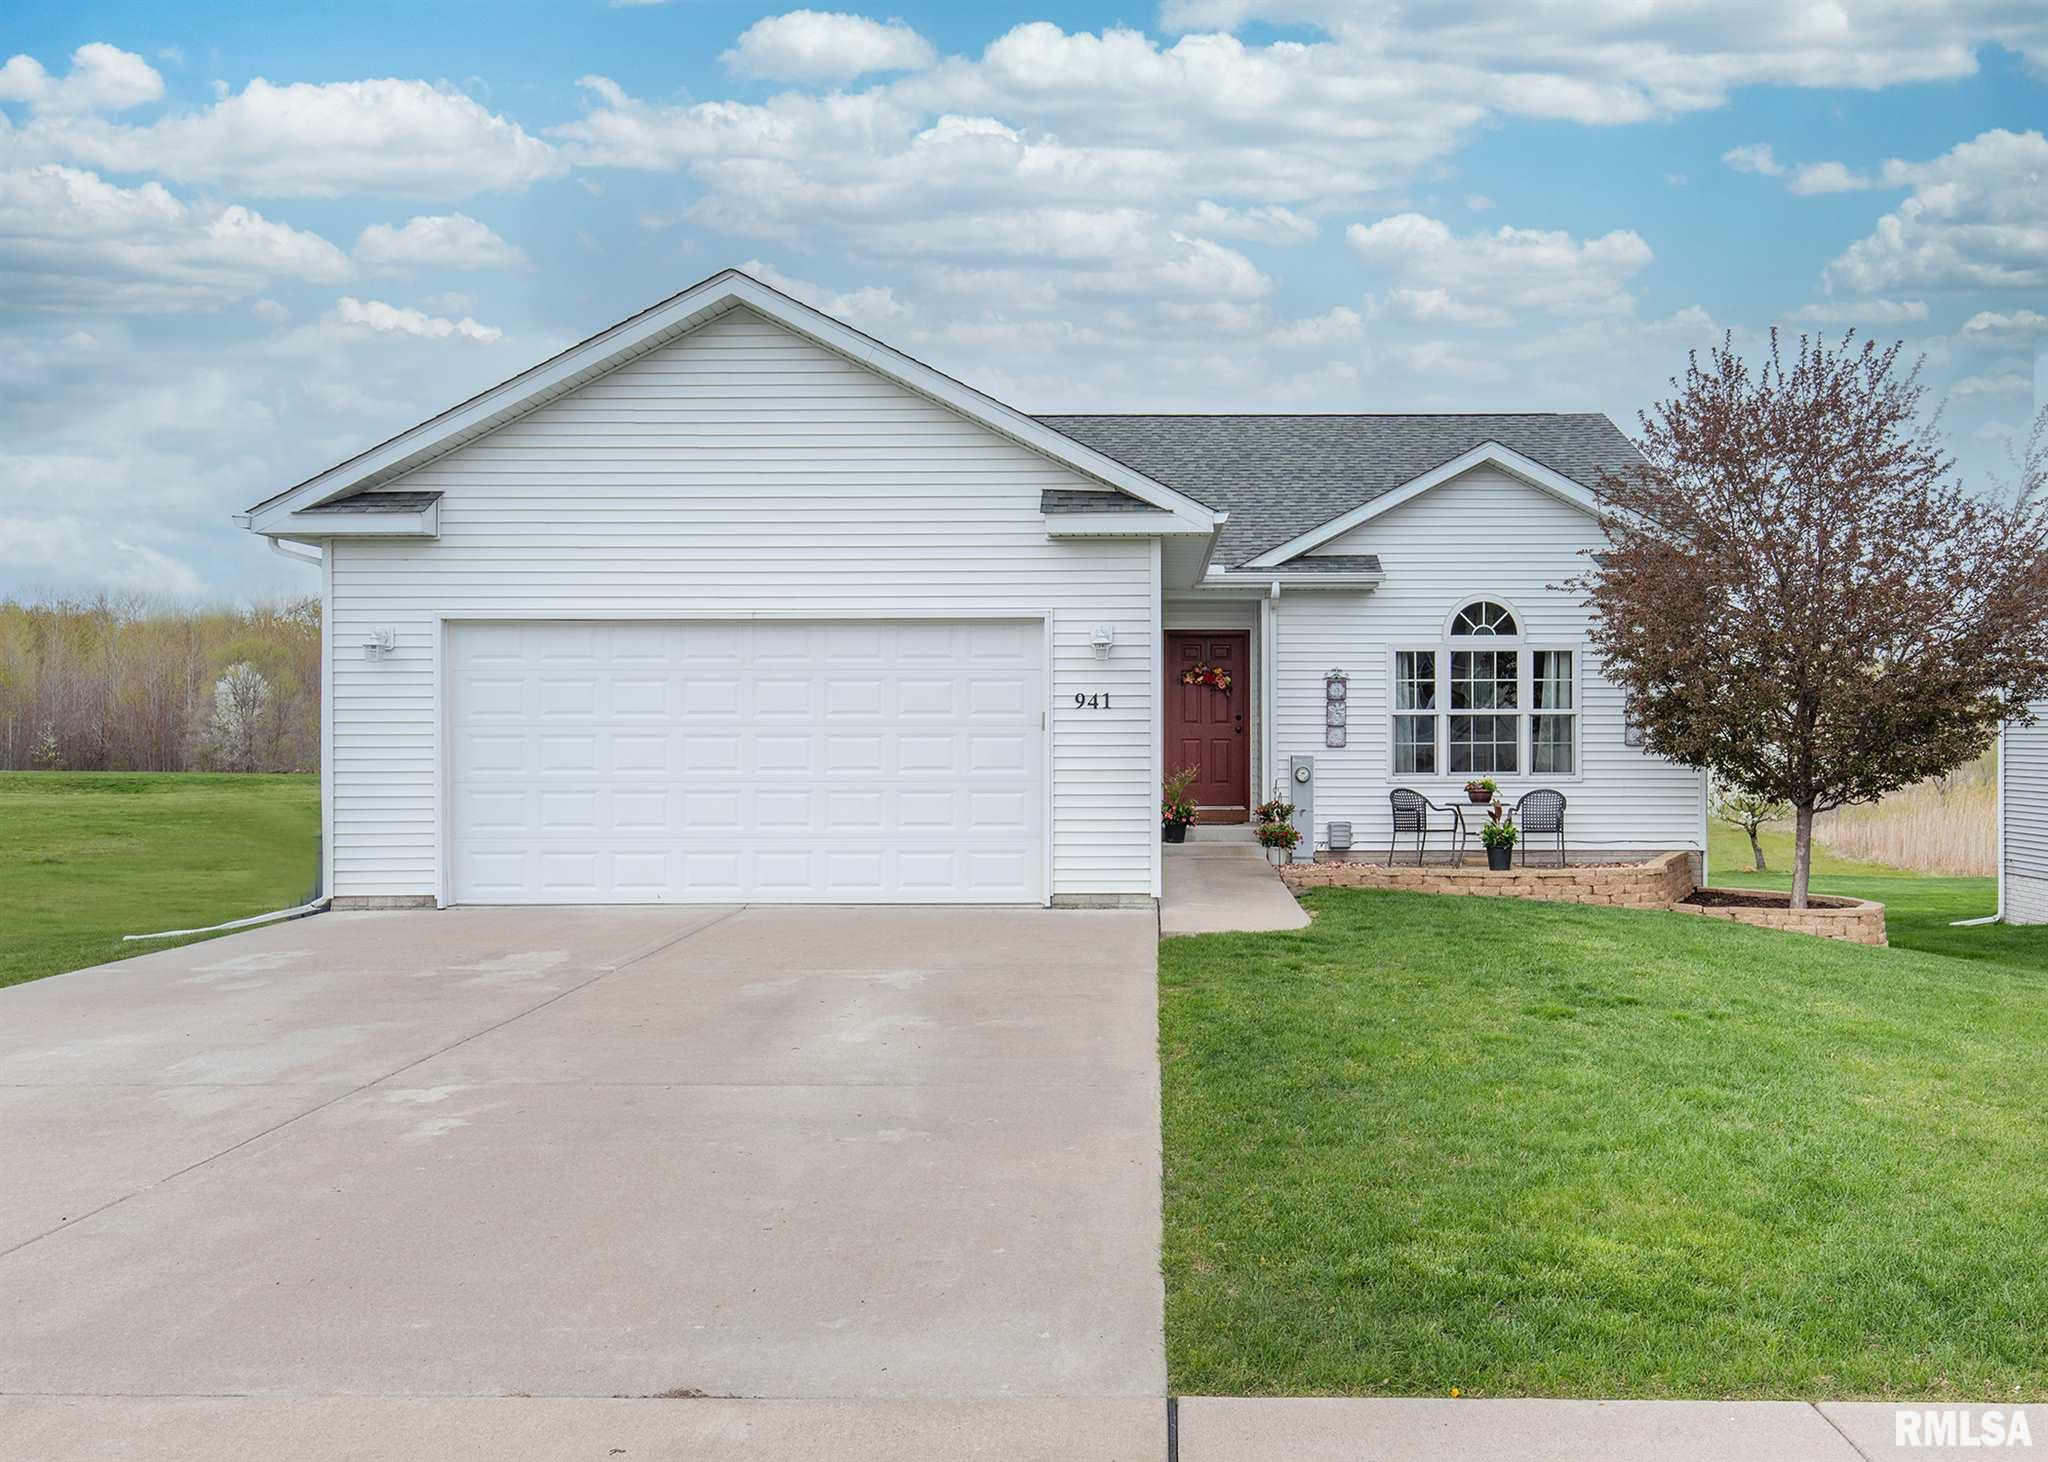 941 5TH Property Photo - Andalusia, IL real estate listing